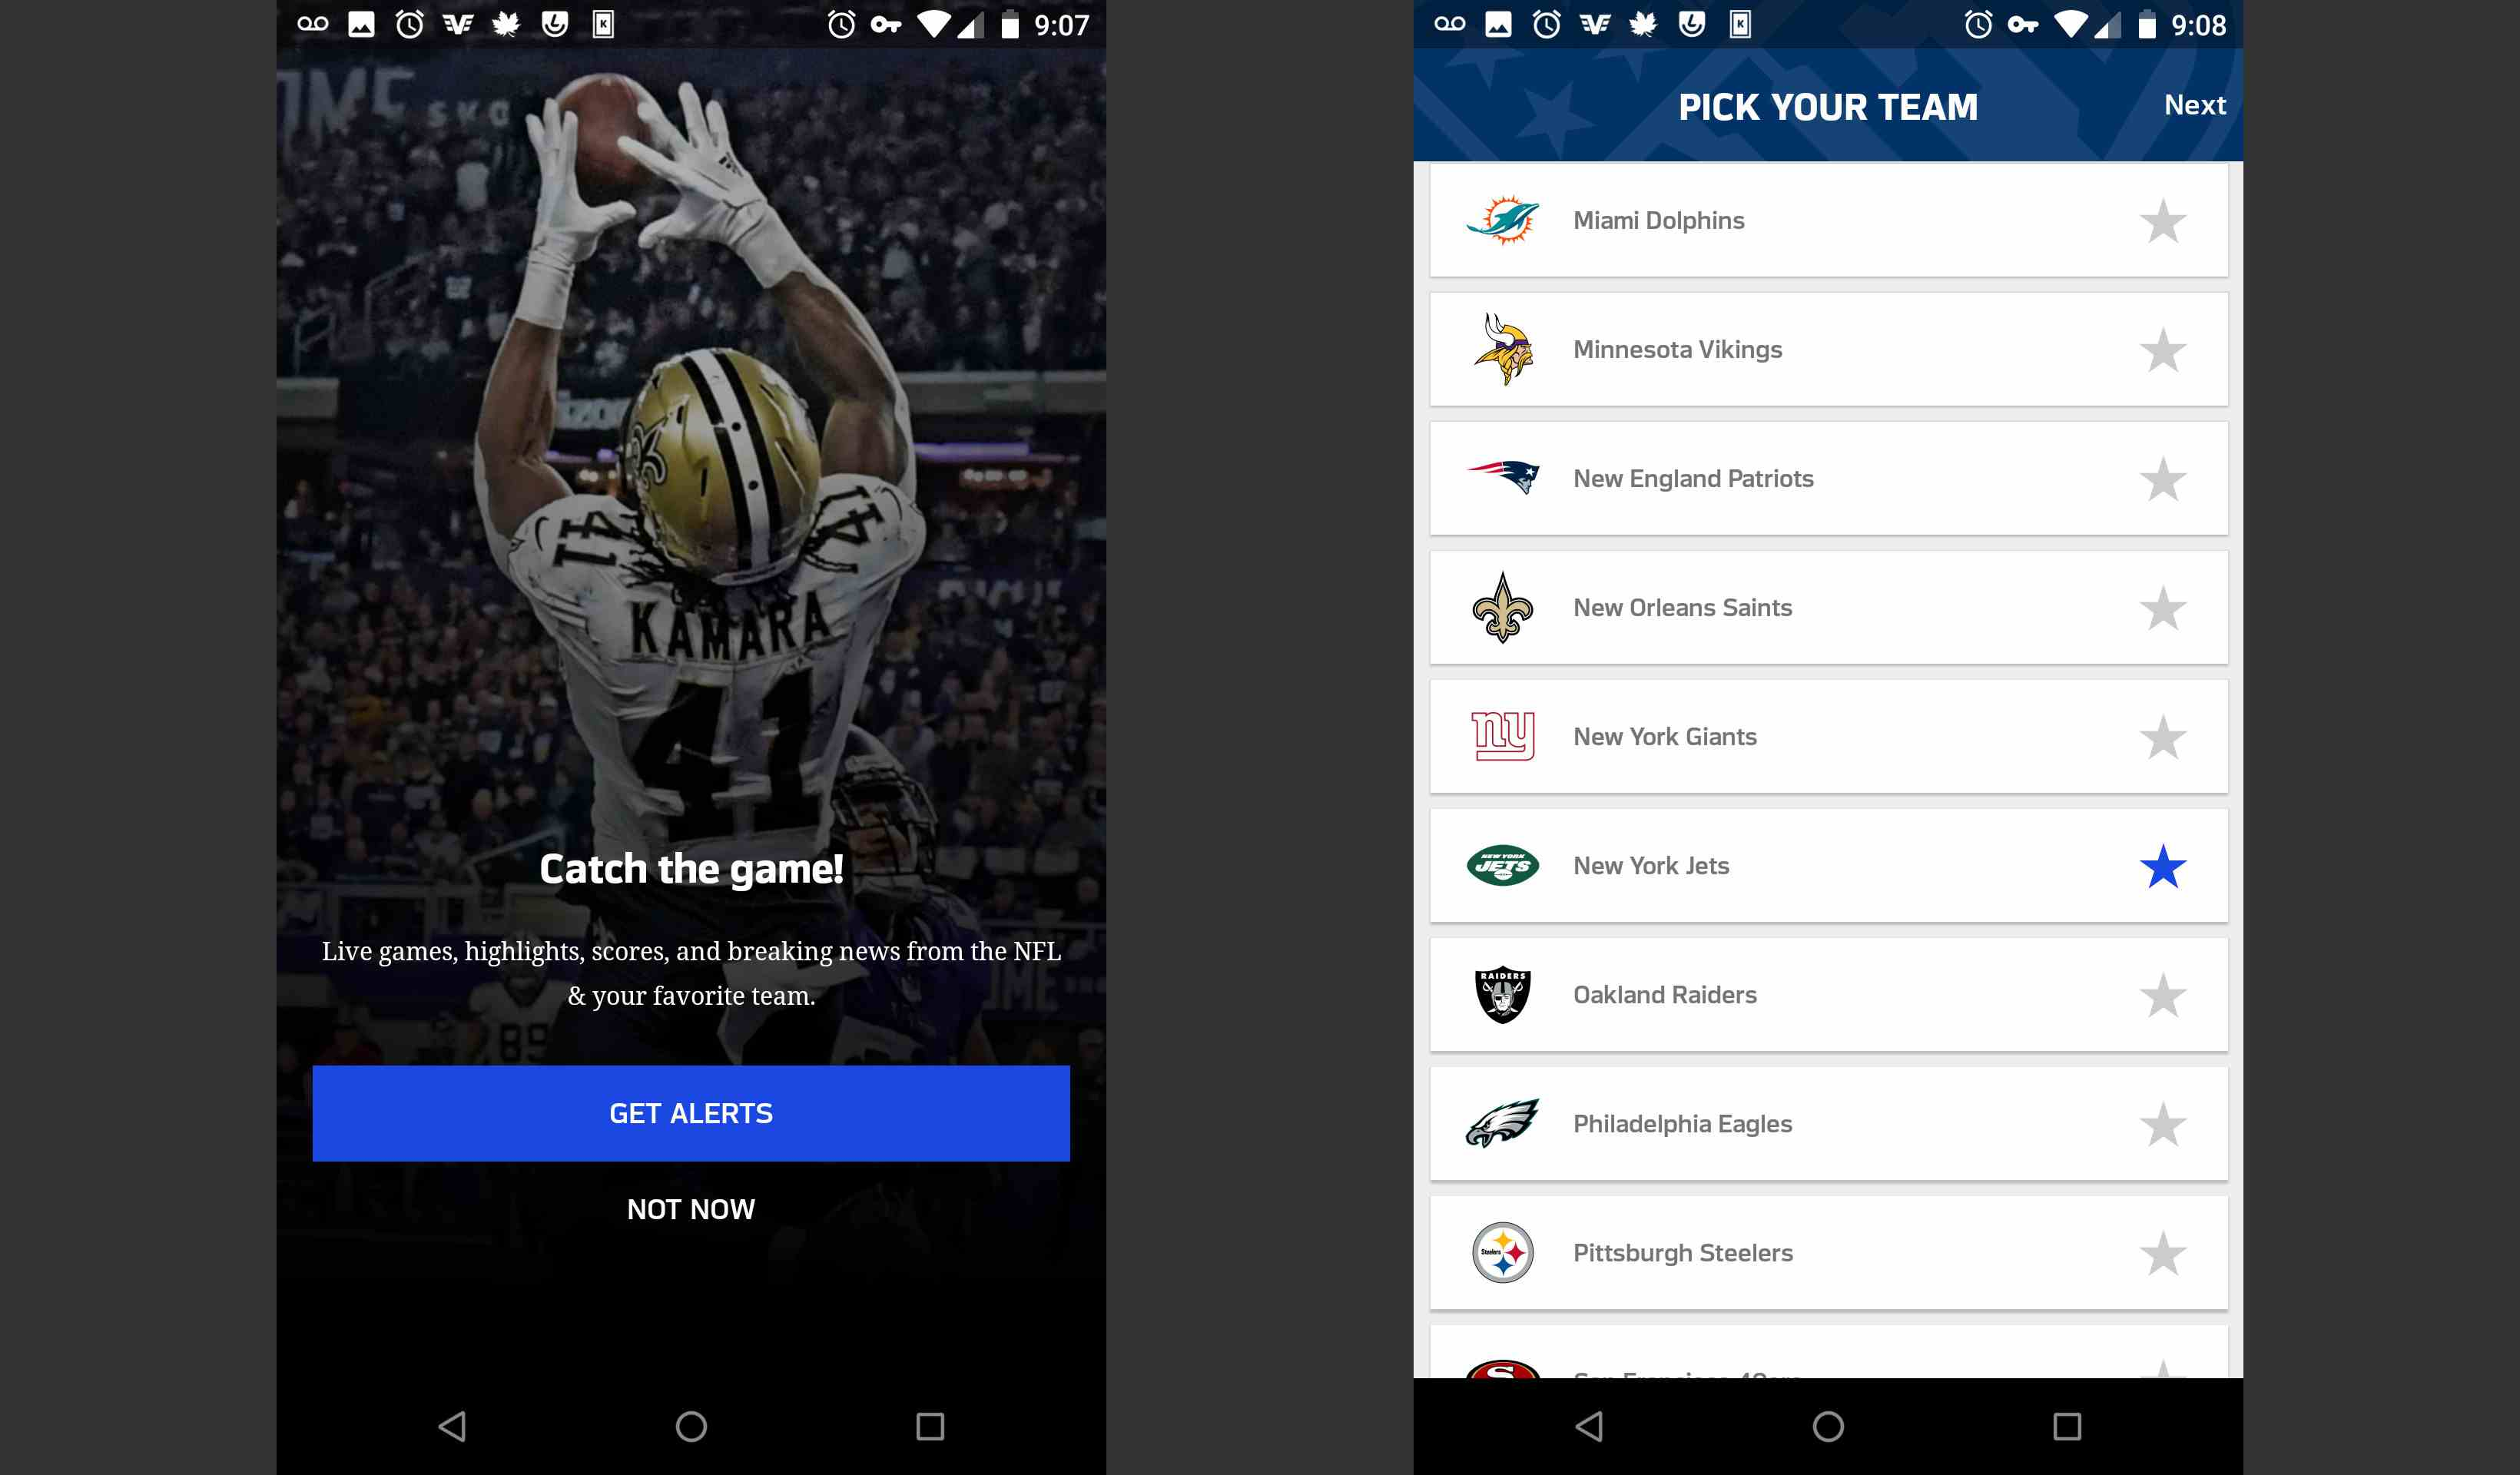 How to Use the NFL Mobile App